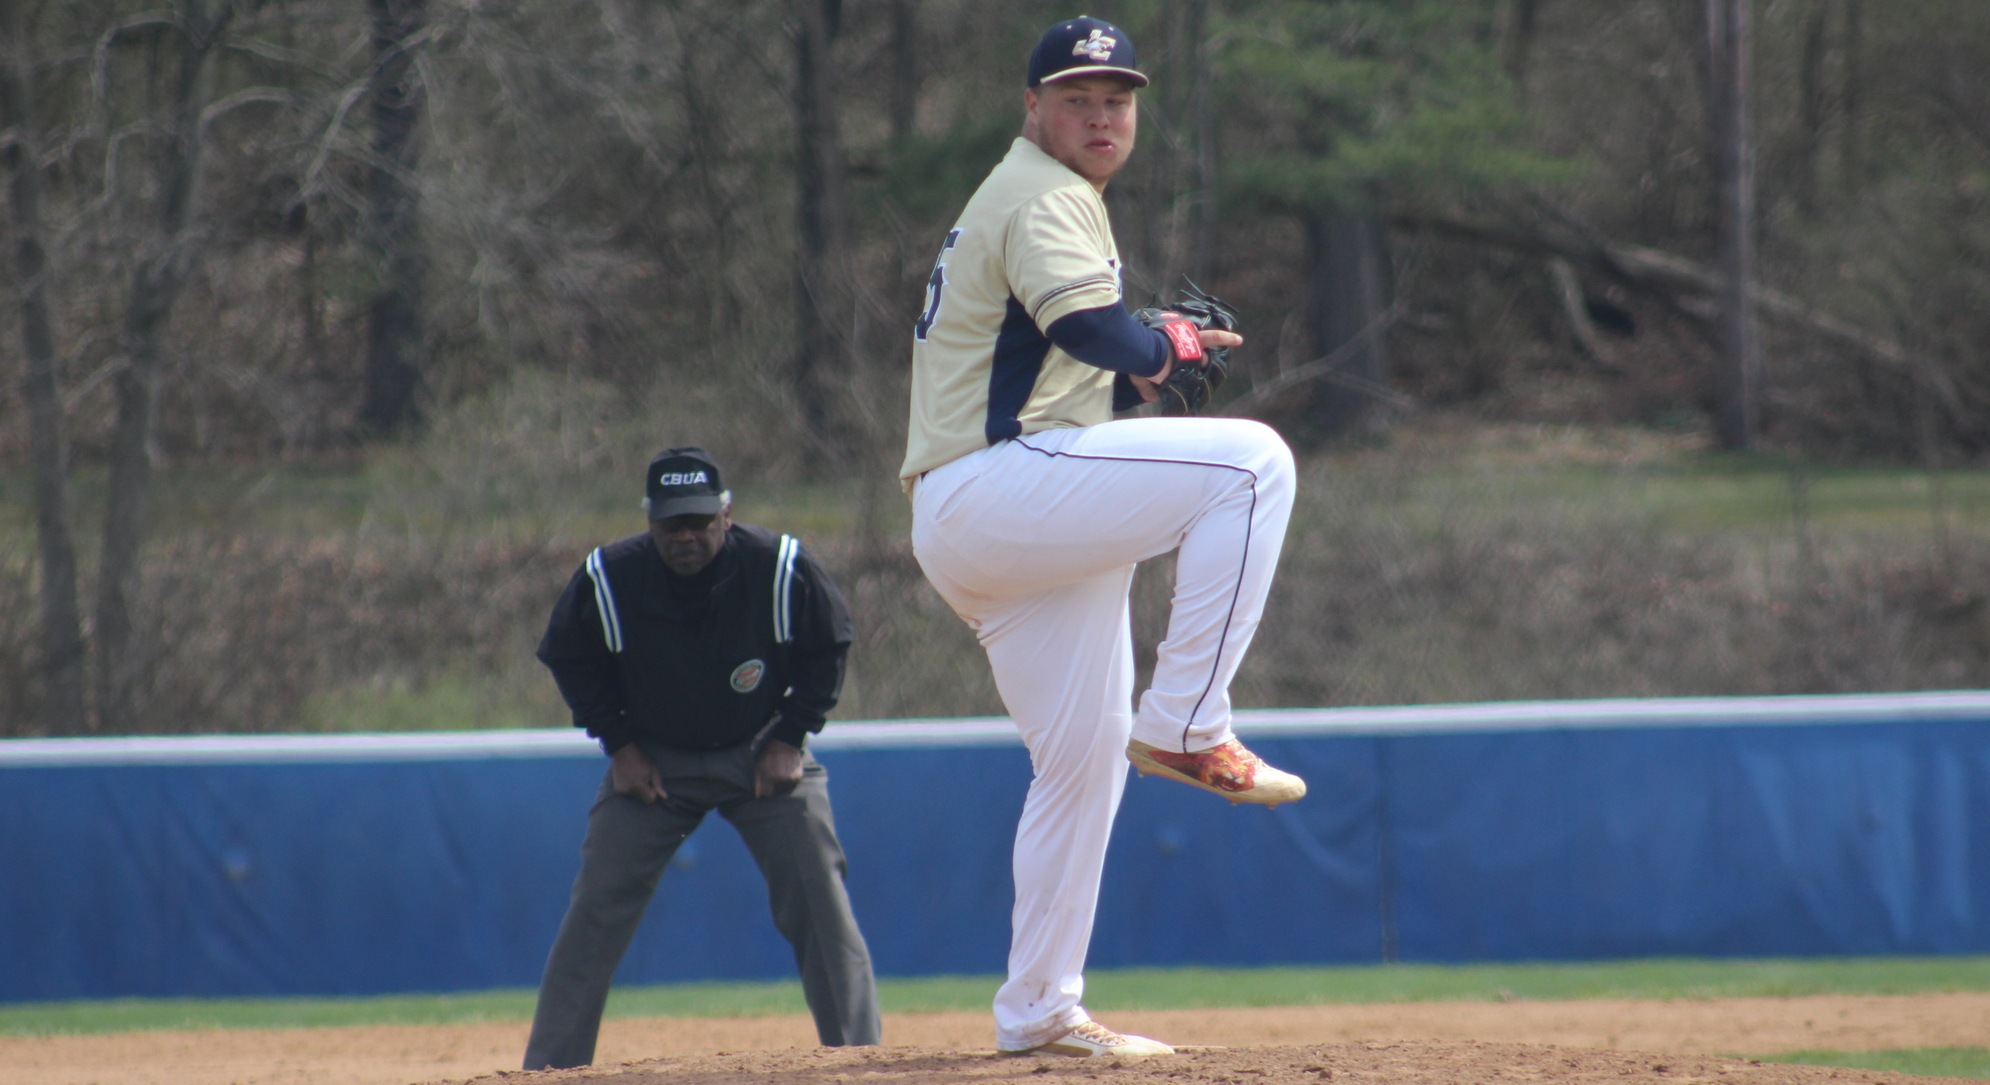 Adam Kipp started on the mound for the Eagles, striking out three.